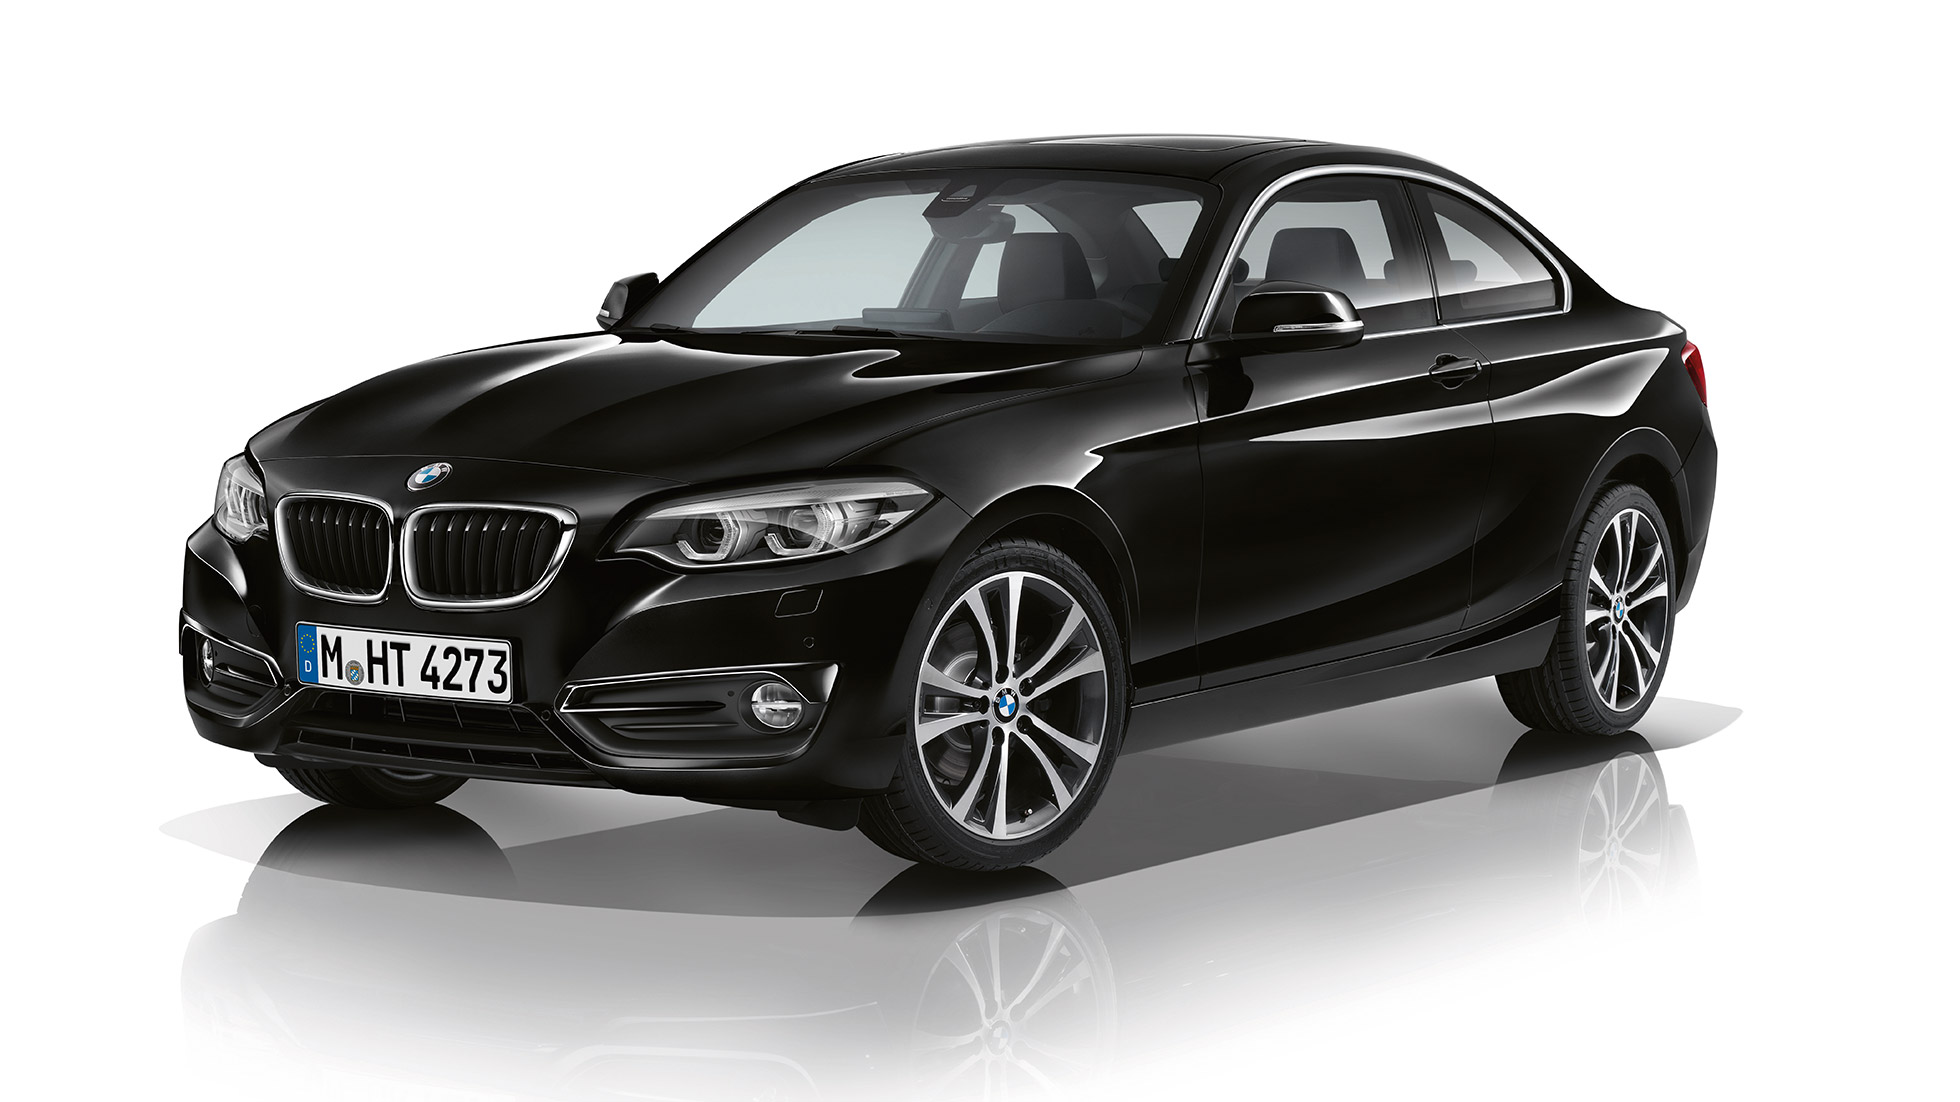 BMW 2-serie Coupé, Model Sport Line, set forfra let drejet